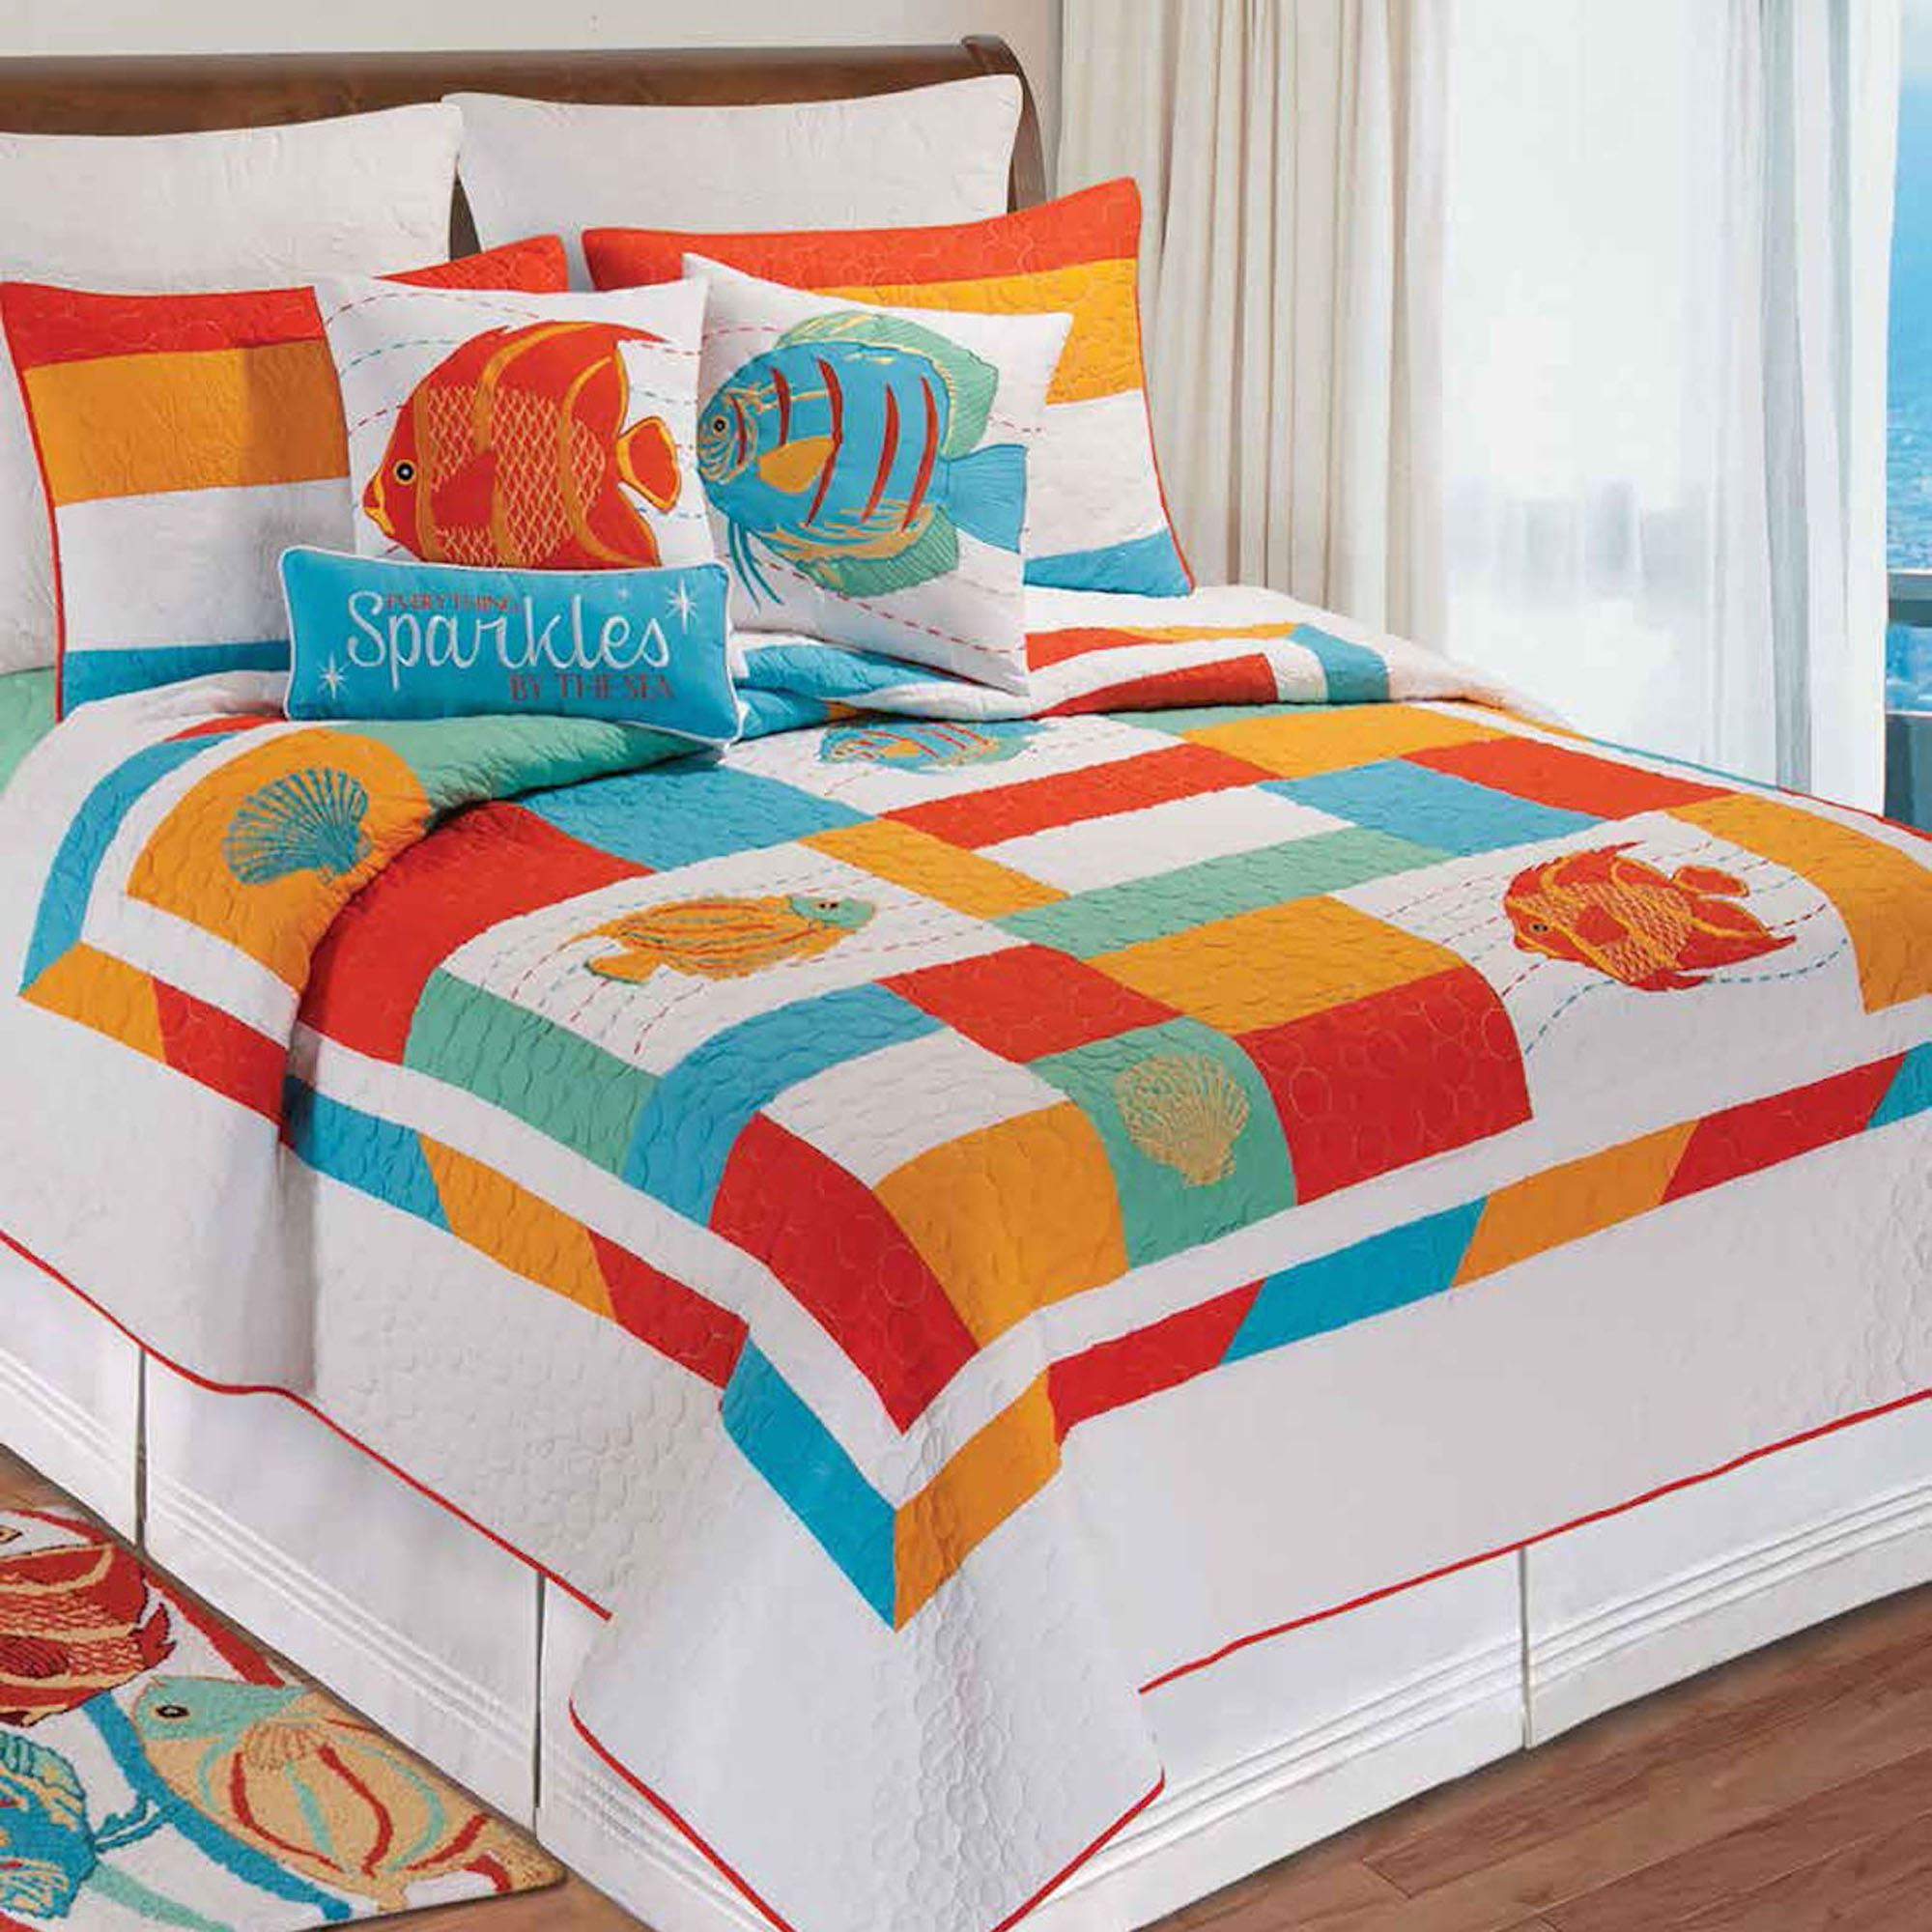 South Seas Colorful Fish Quilt Bedding : fish quilt - Adamdwight.com